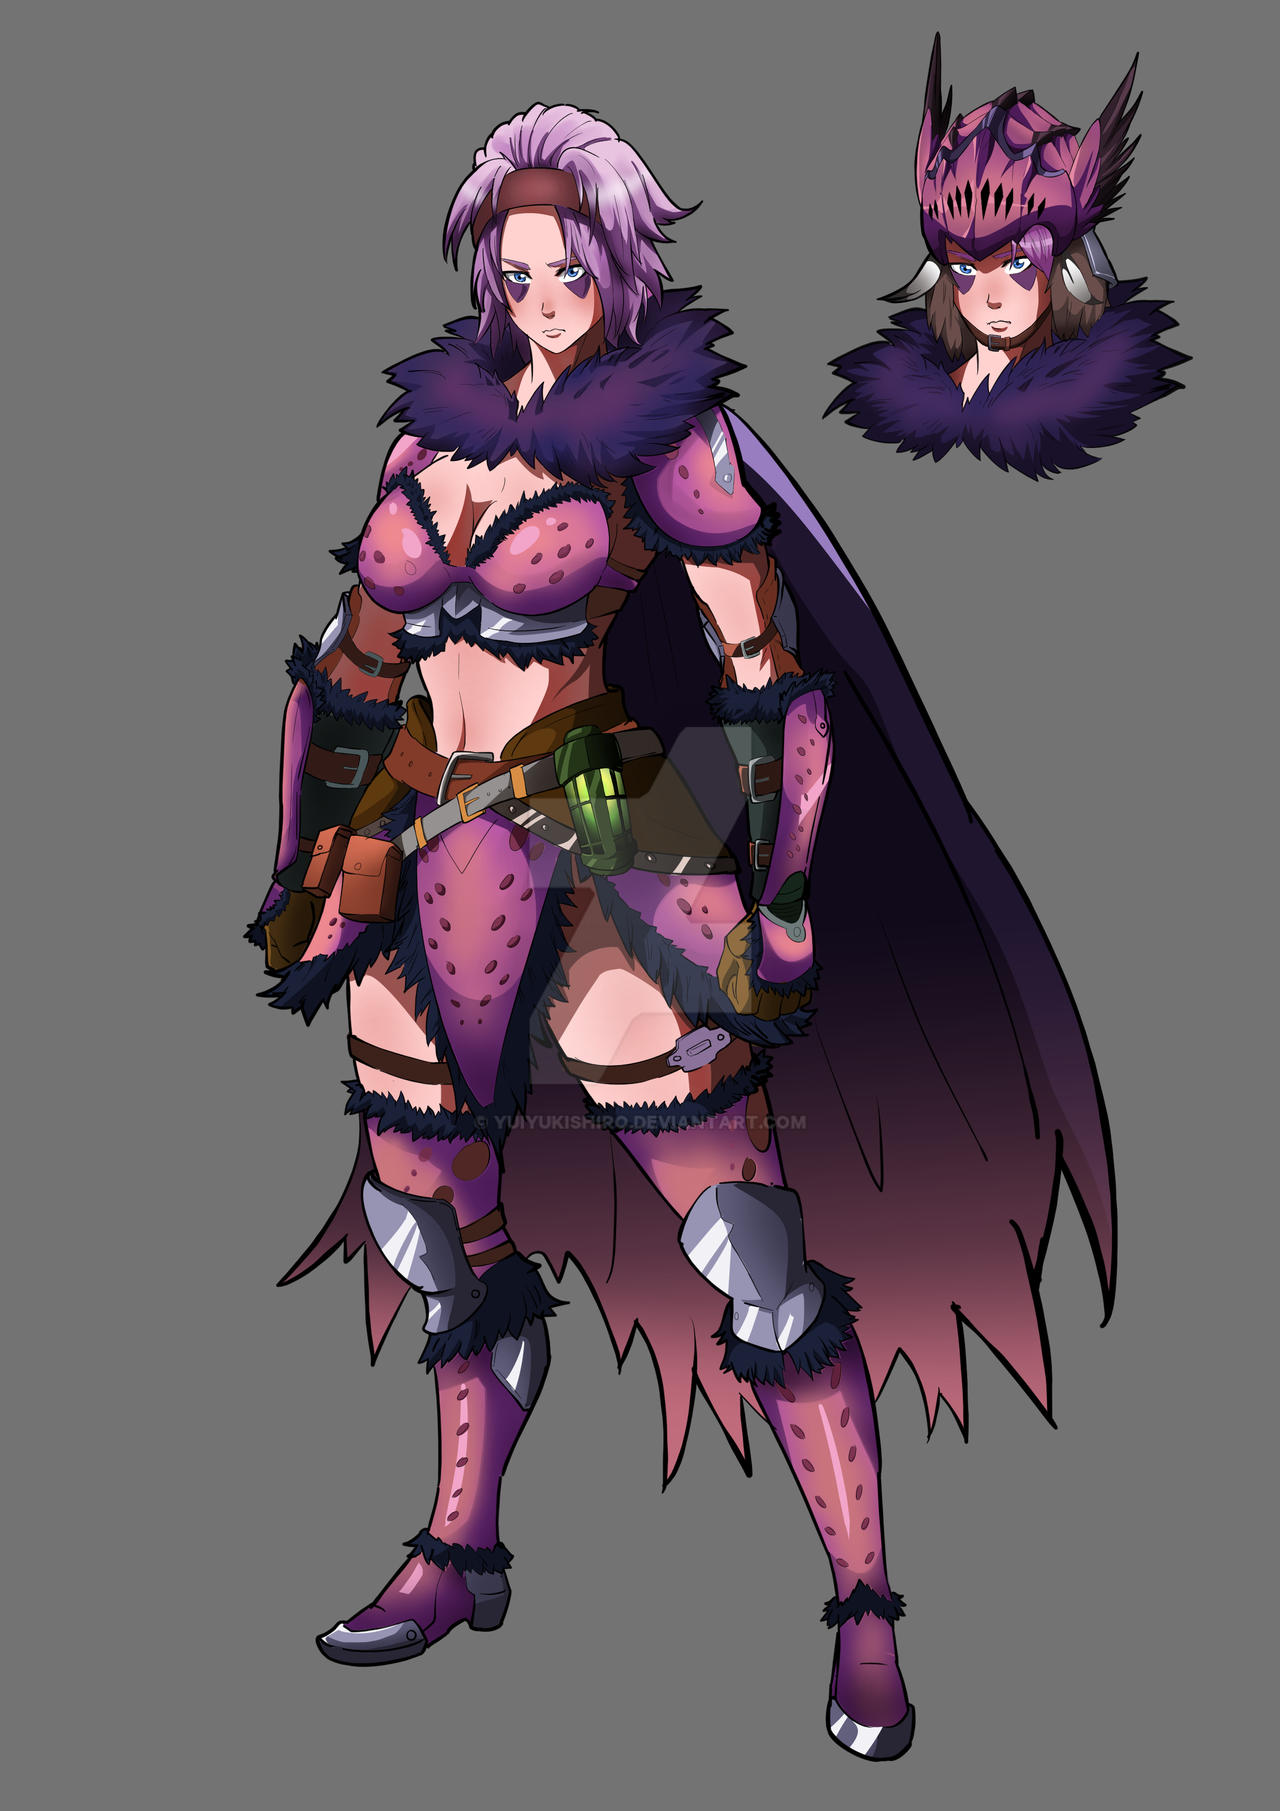 Female Anjanath Armor Art By Yuiyukishiro On Deviantart